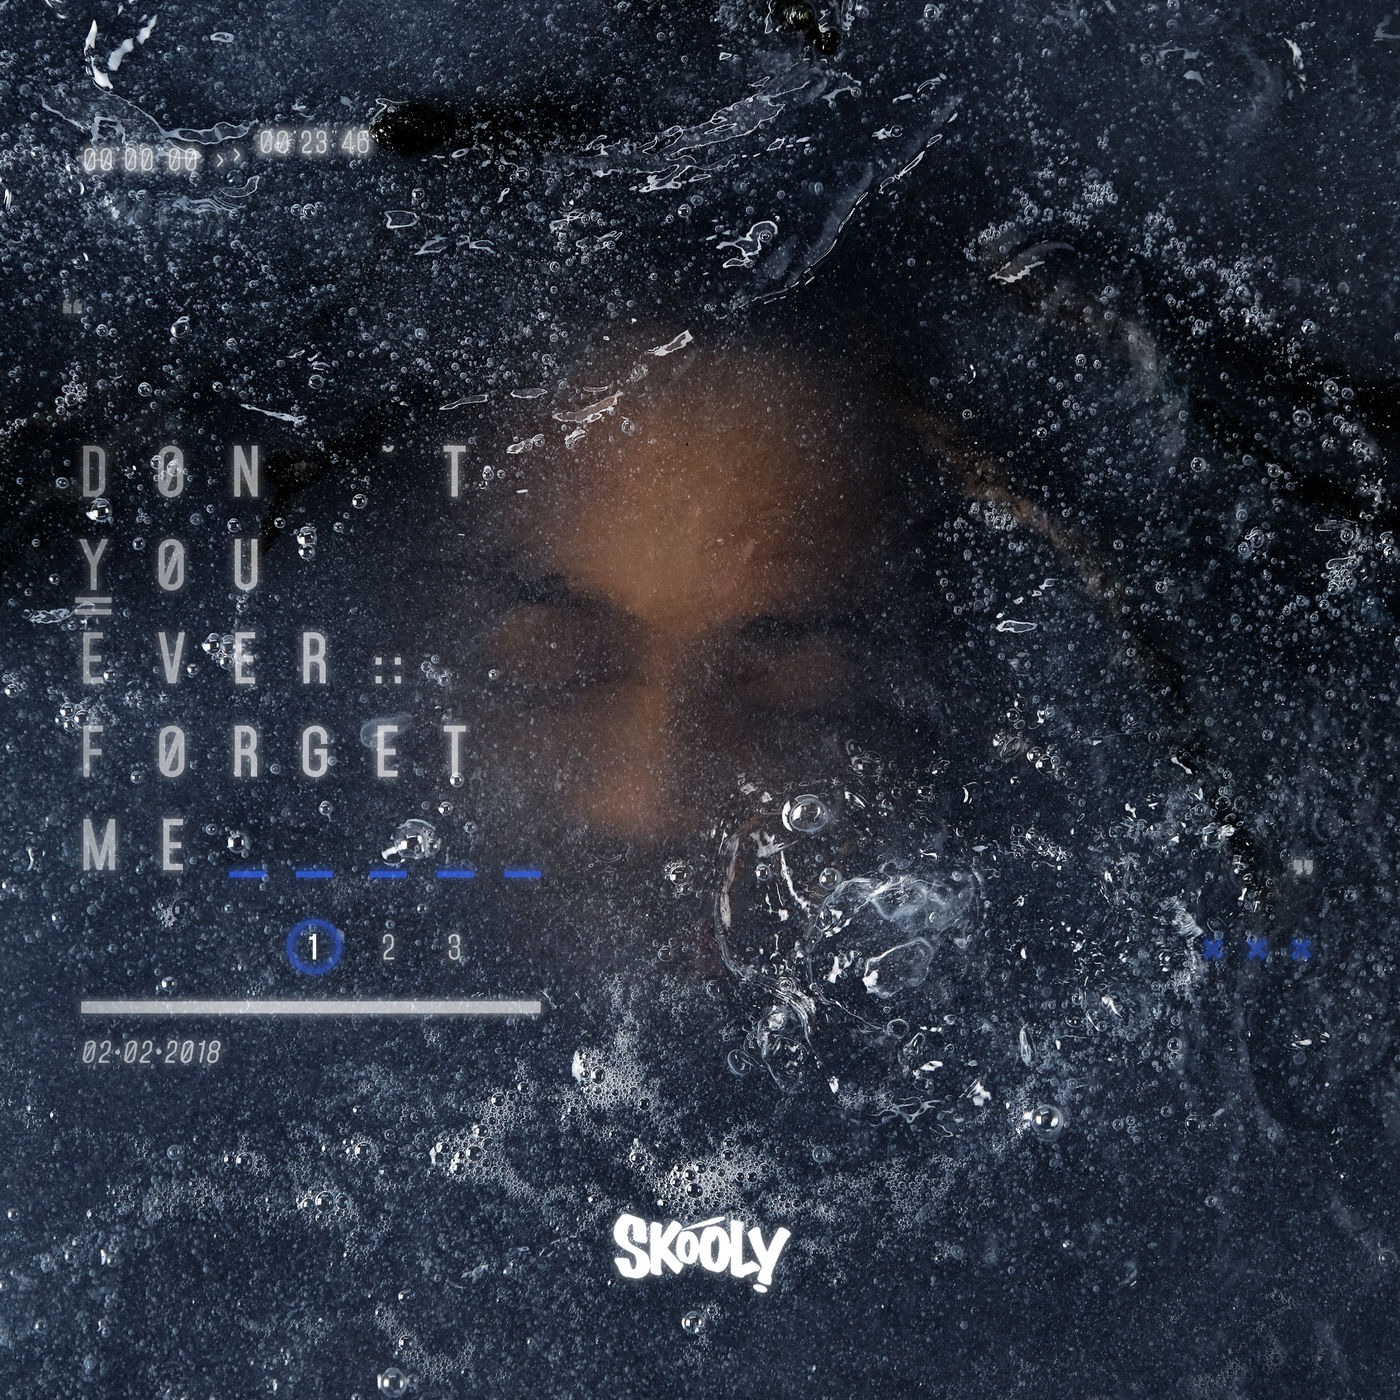 Skooly - Don't You Ever Forget Me - EP Cover